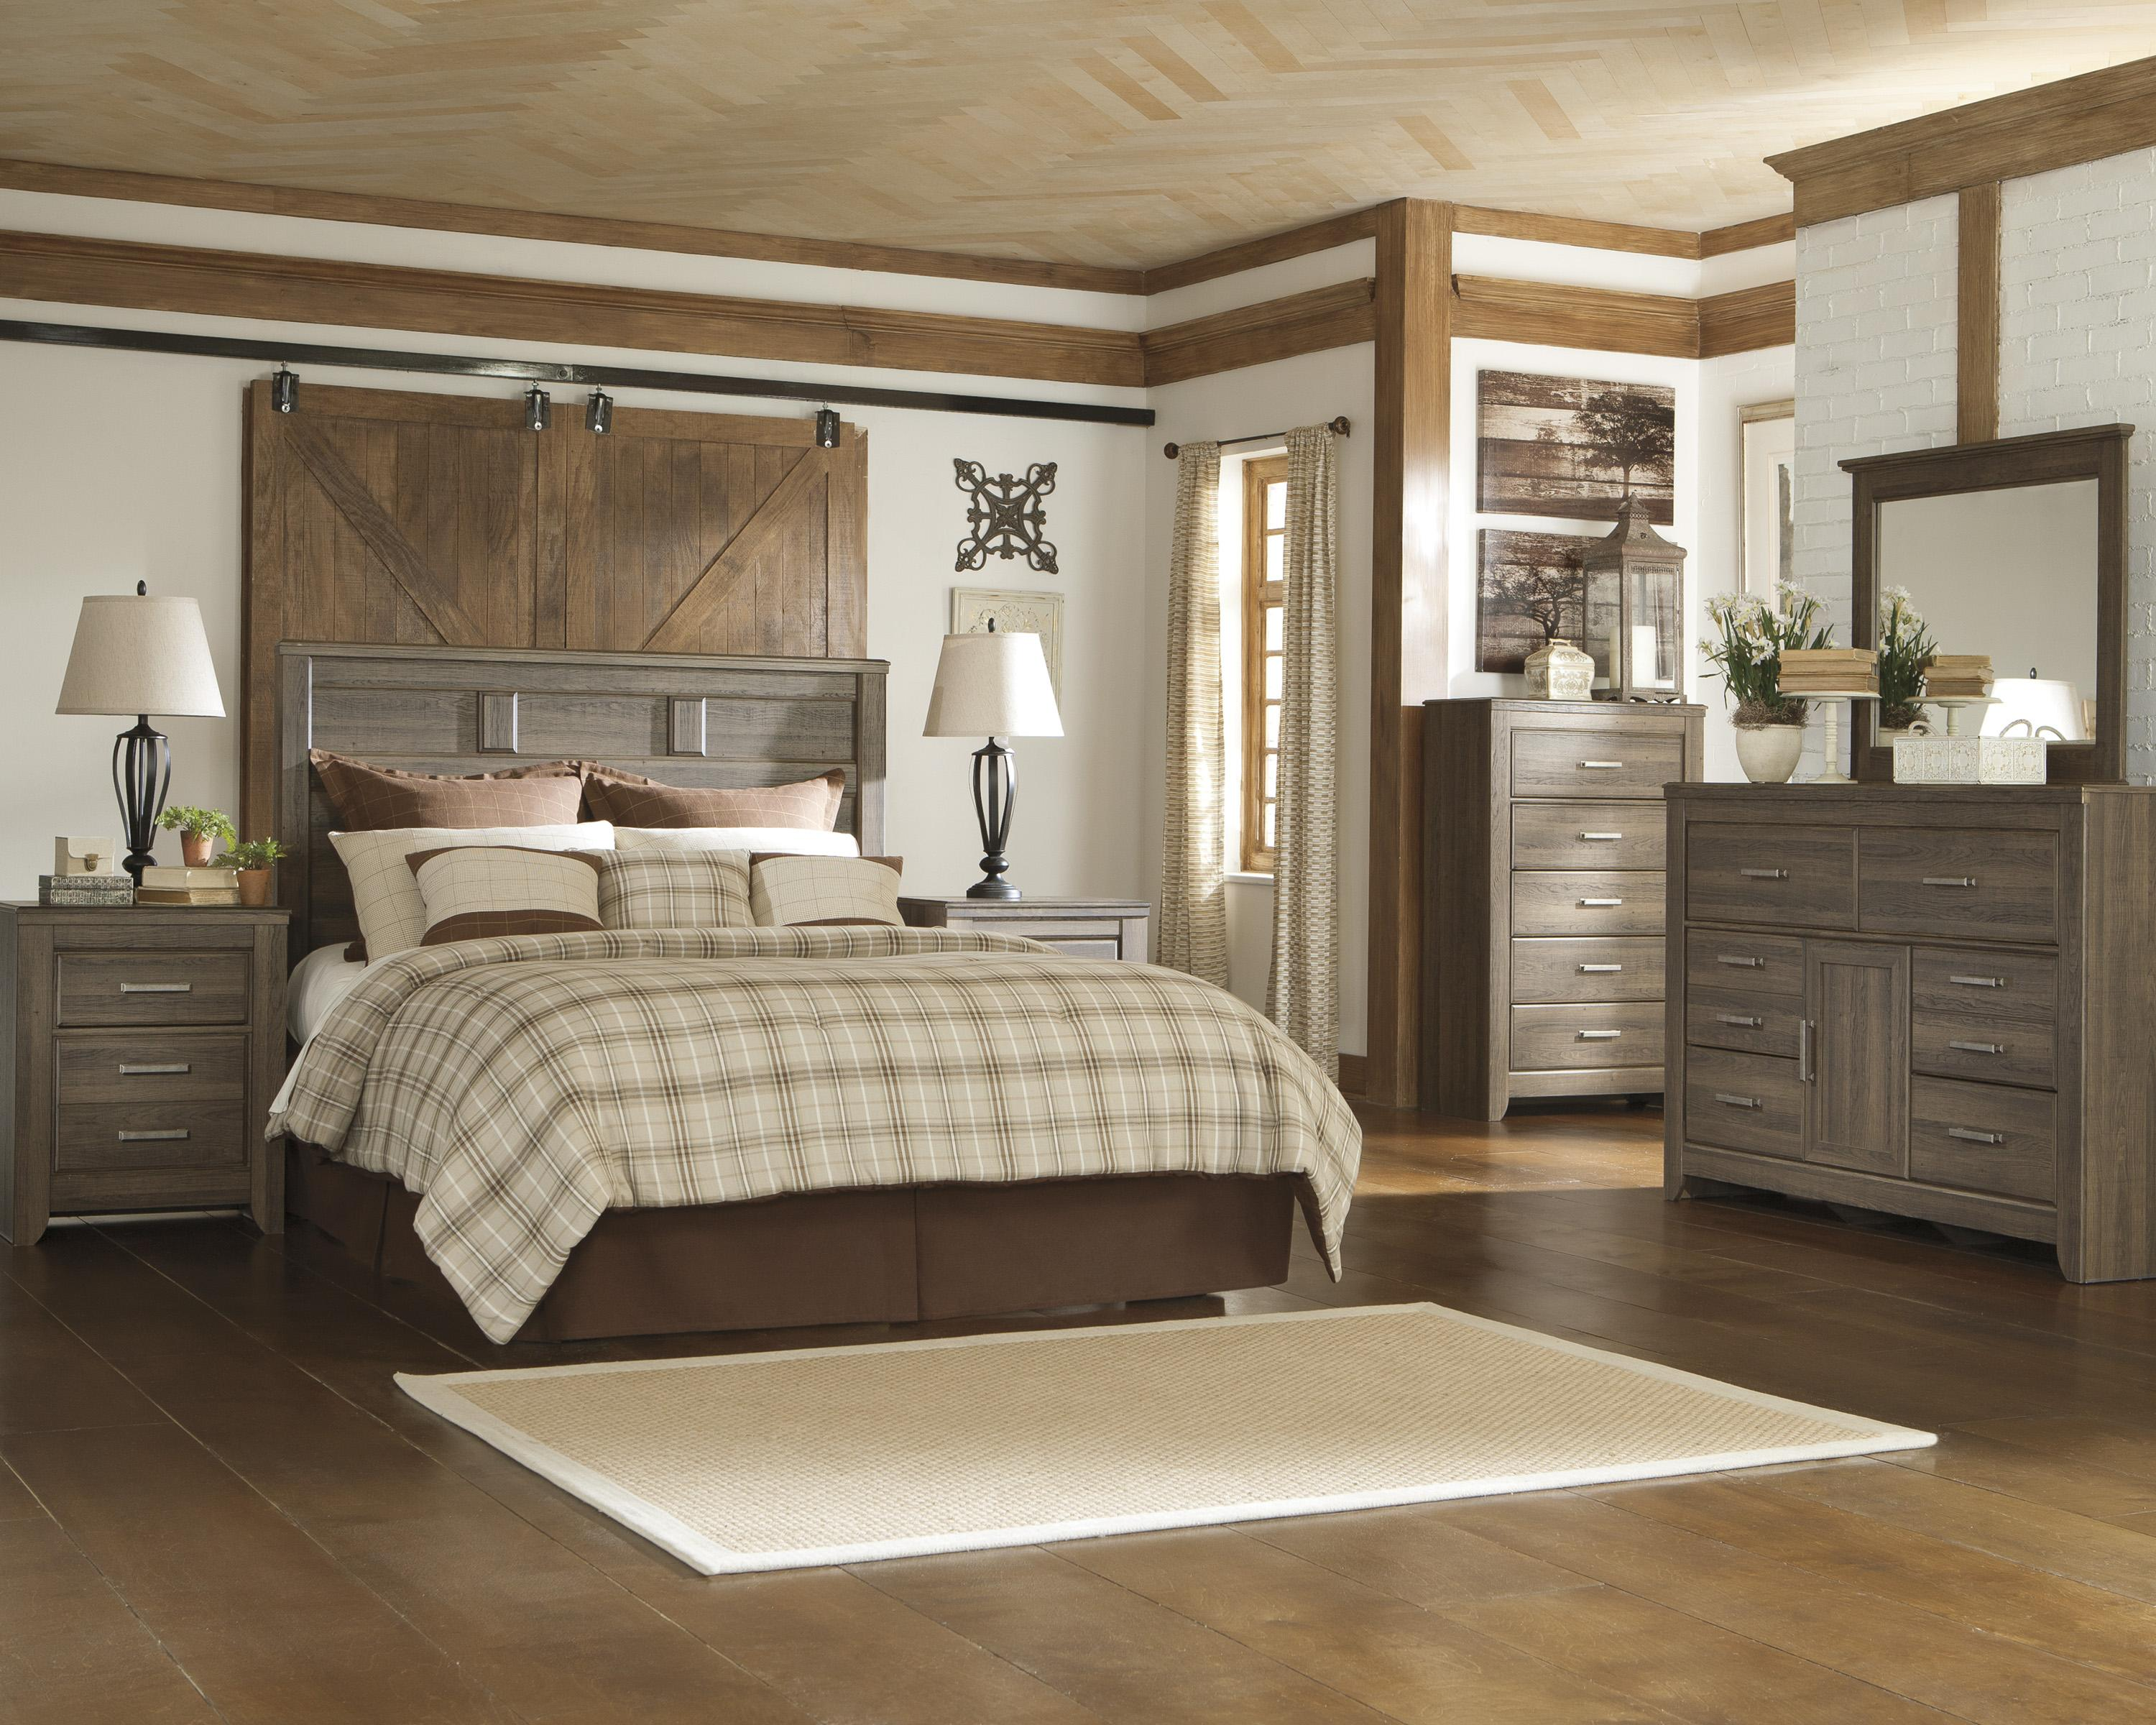 Juararo Queen Bedroom Group by Signature Design by Ashley at Northeast Factory Direct